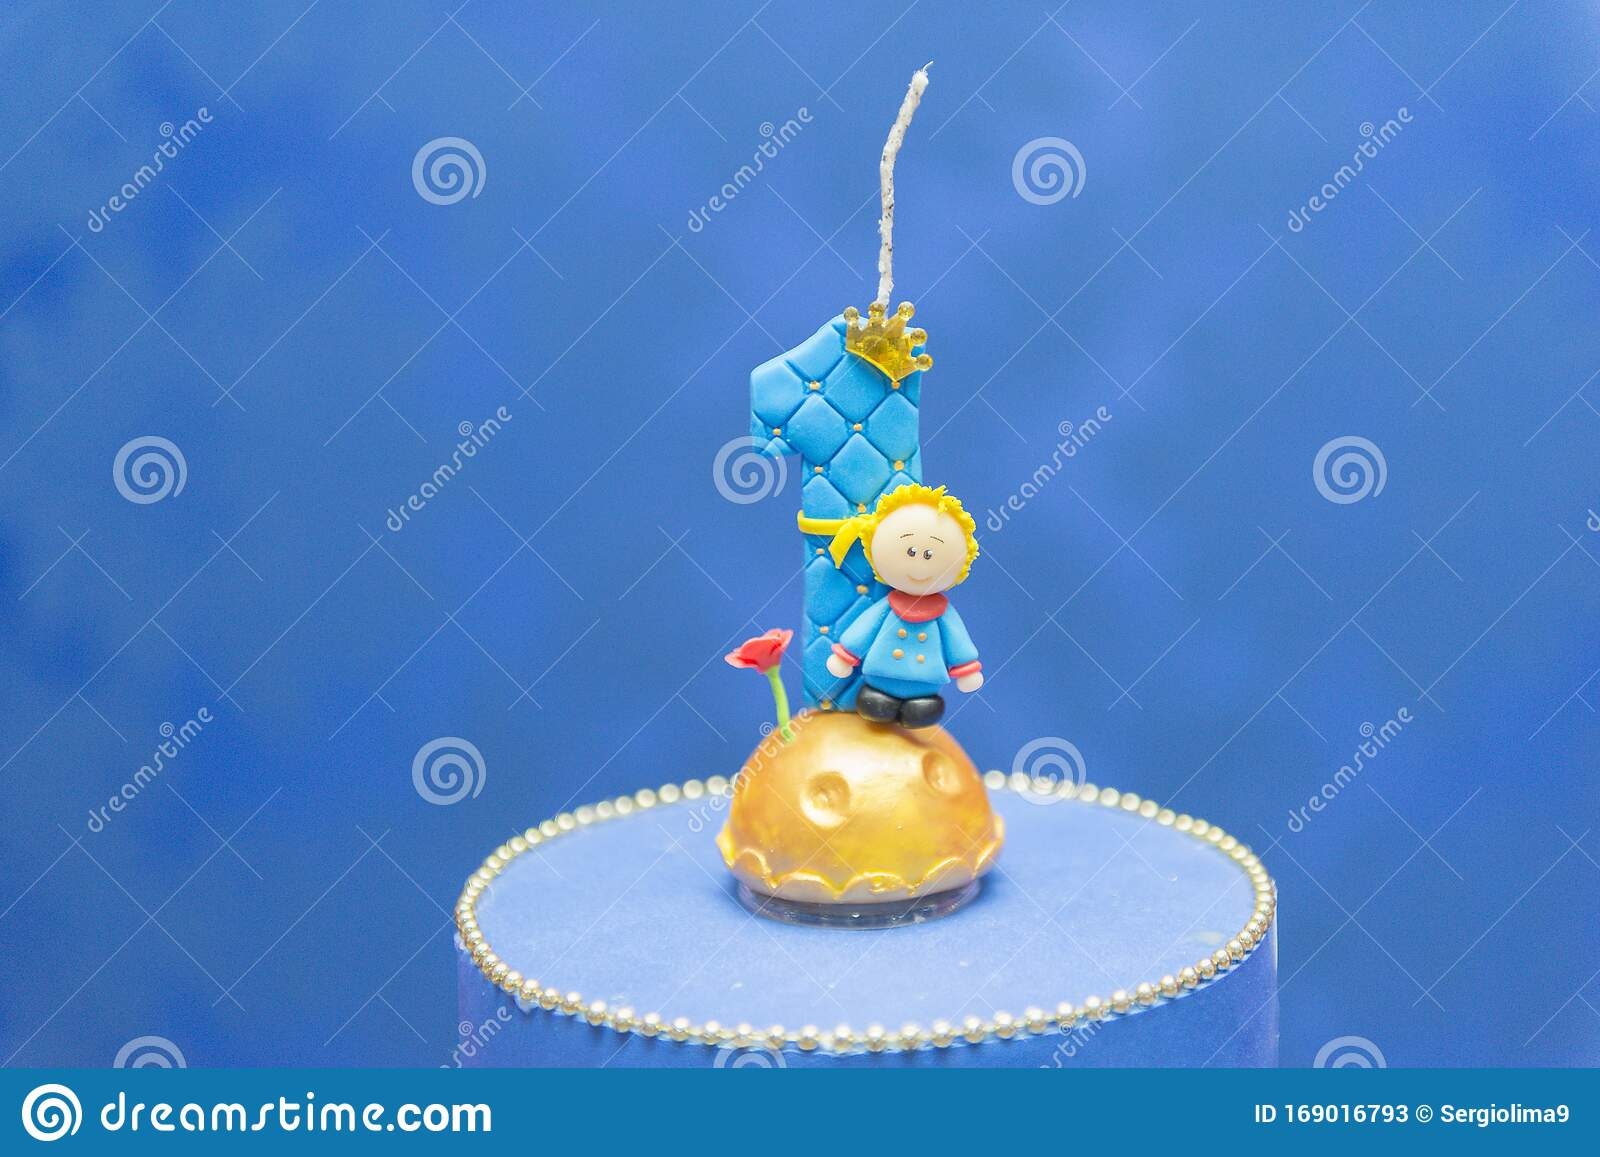 Swell Number One Candle On A Blue Background Little Prince Theme Fake Personalised Birthday Cards Fashionlily Jamesorg